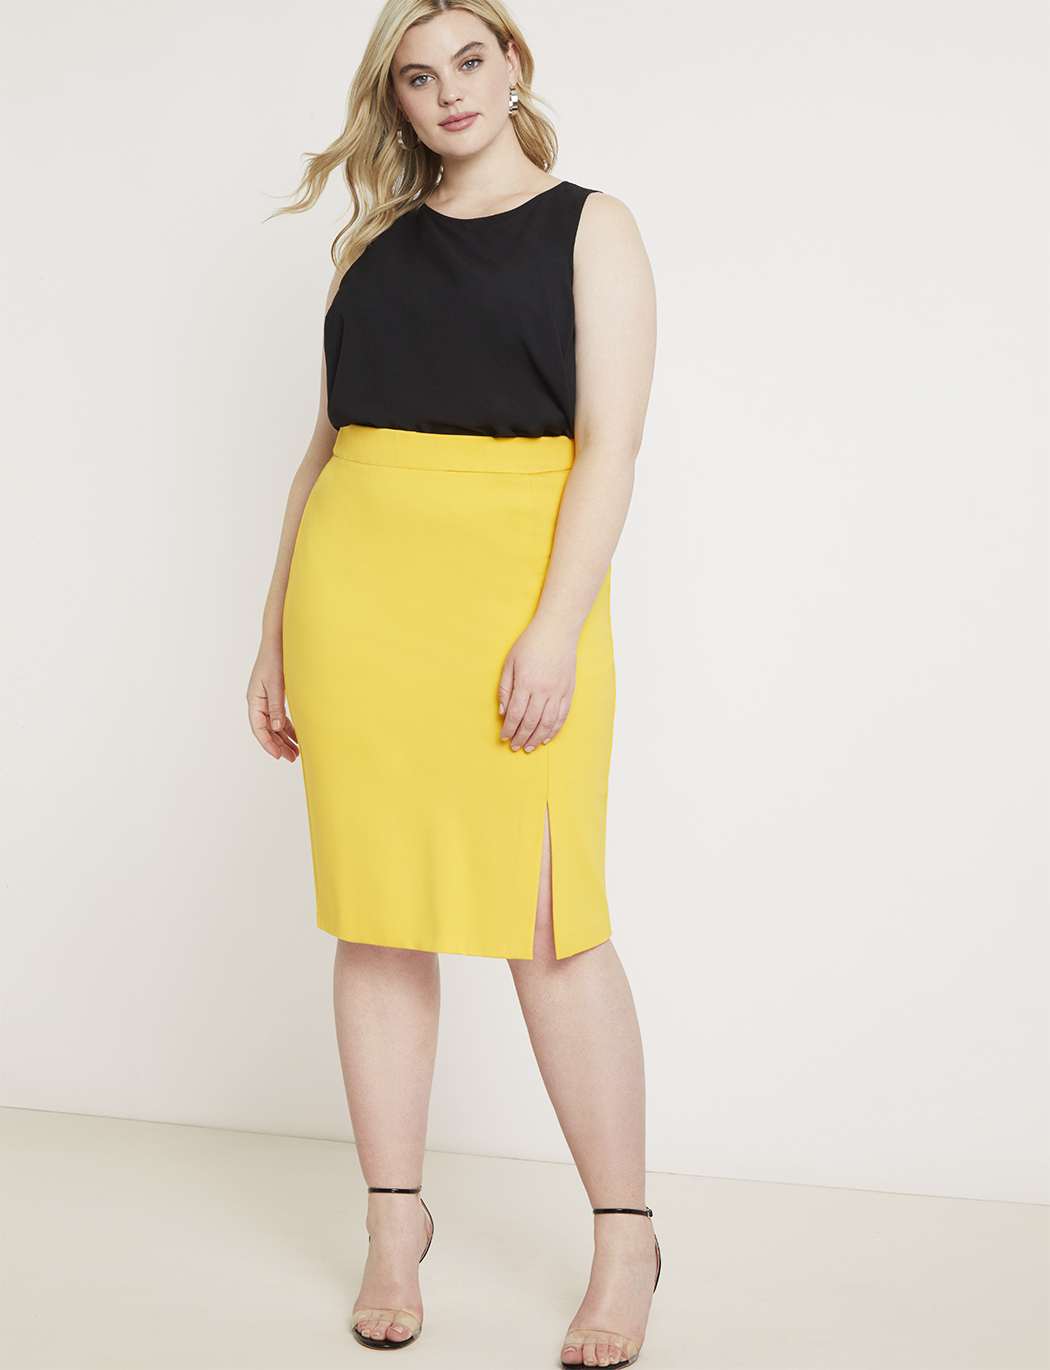 Sleeveless Asymmetric Panel Top